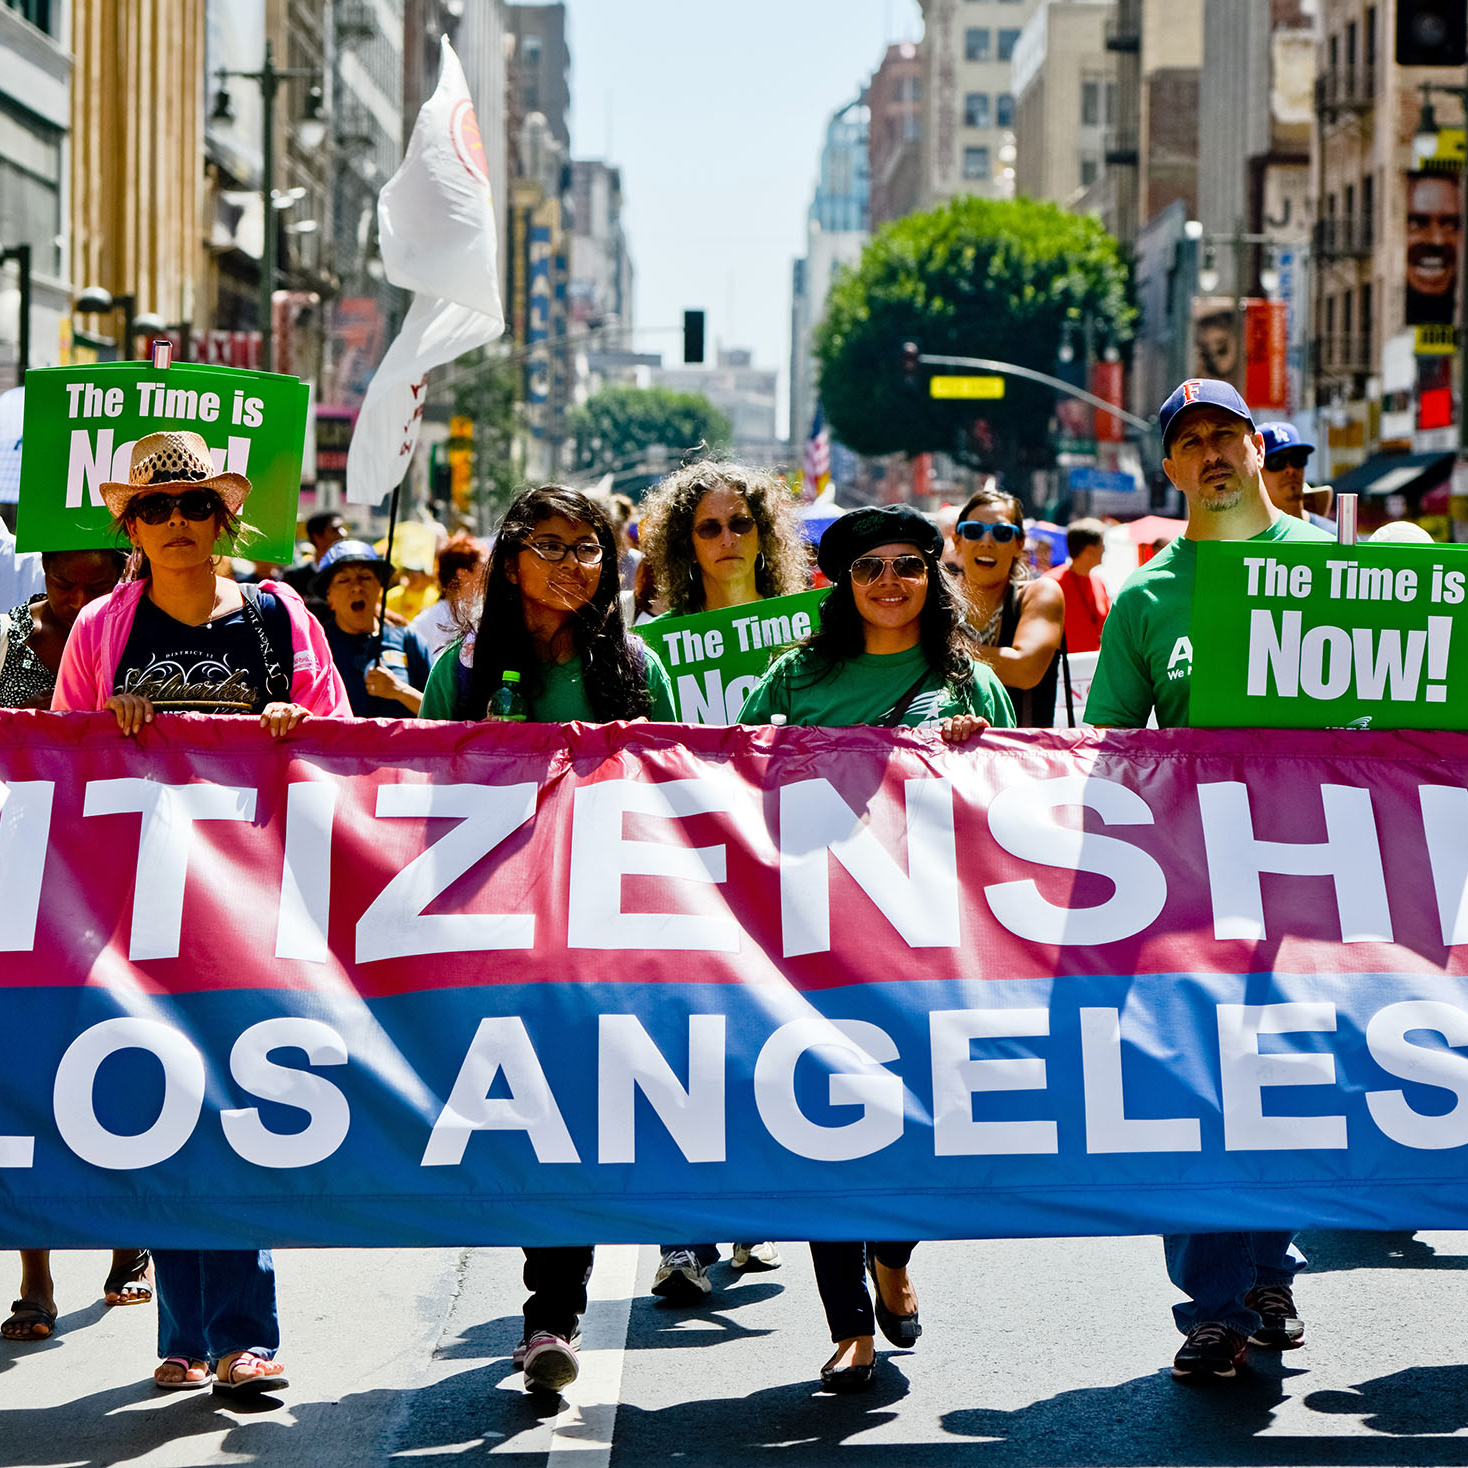 Los Angeles, USA - May 1, 2013: May Day March in Los Angeles Downtown, USA. People holding banners representing different social structures, organizations. March was mostly dedicated to Immigration reform discussed. Posters in English and Spanish. This group of people carrying banner saying: Citizenship now. Los Angeles Unions.